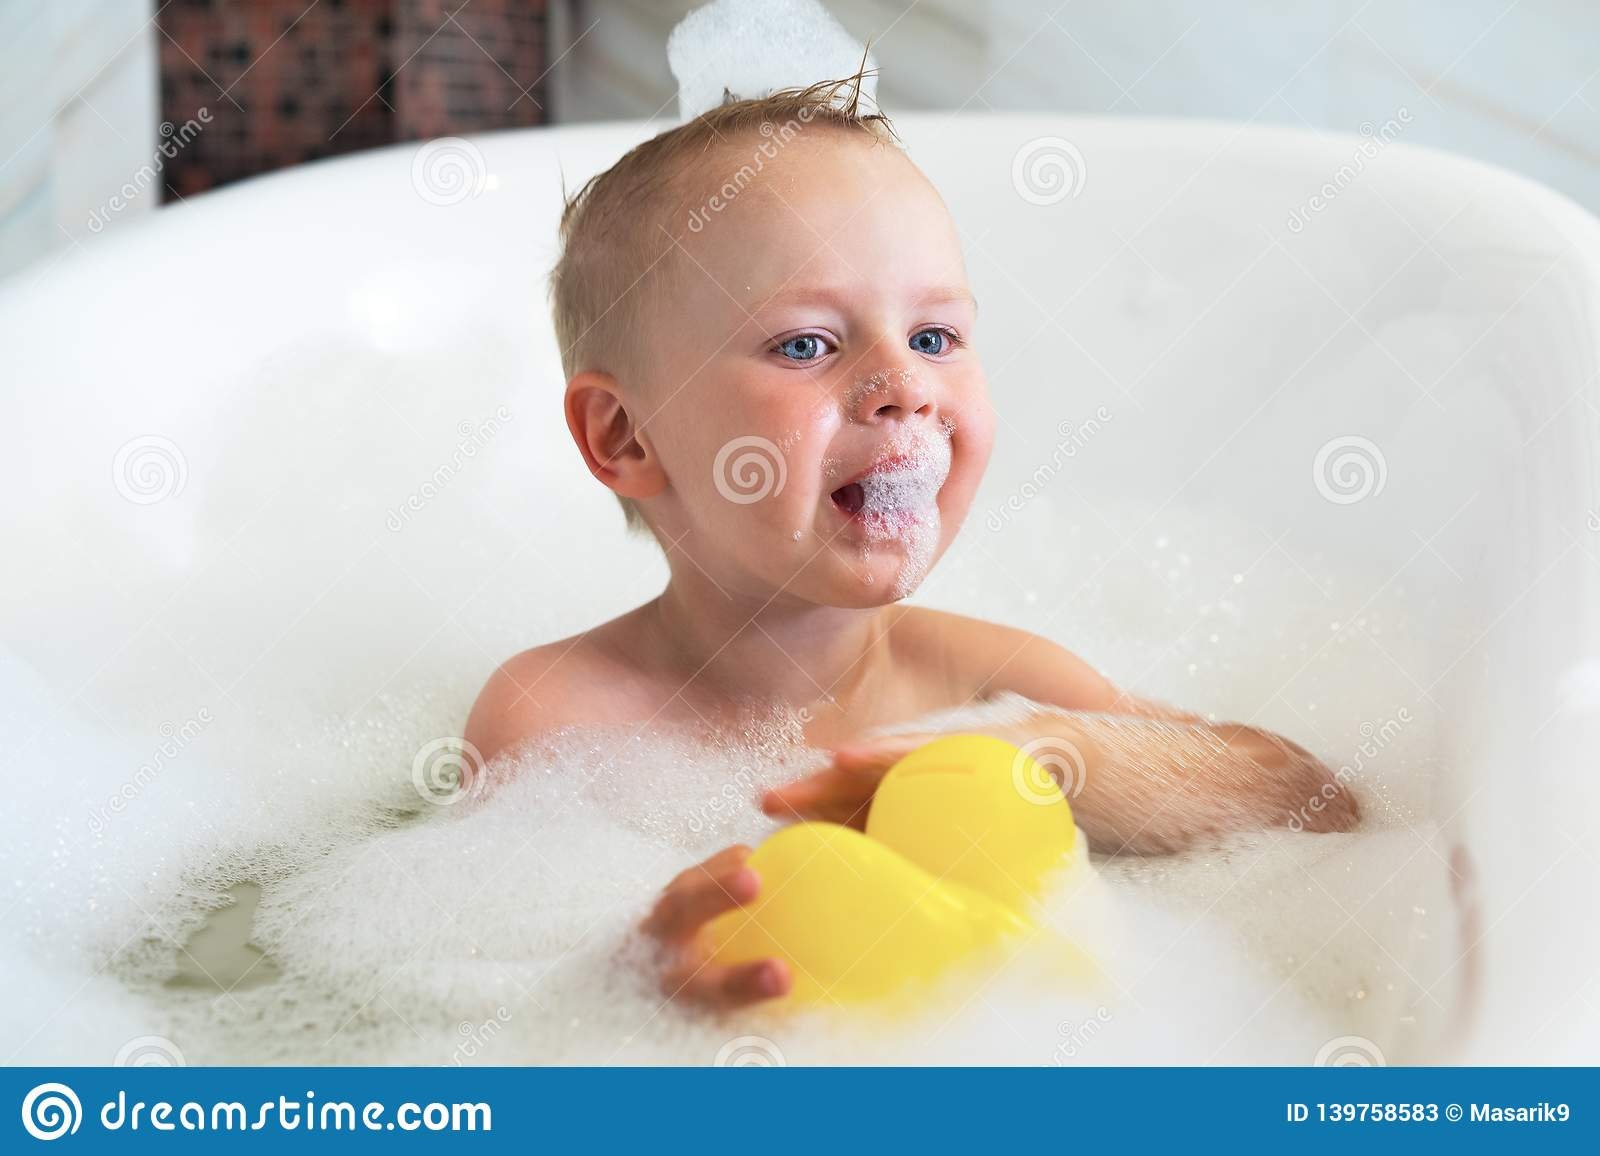 Baby boy sitting in bath with water and foam, cries, eats foam. Smiling kid in bathroom with colorful toy duck. Hygiene and care f